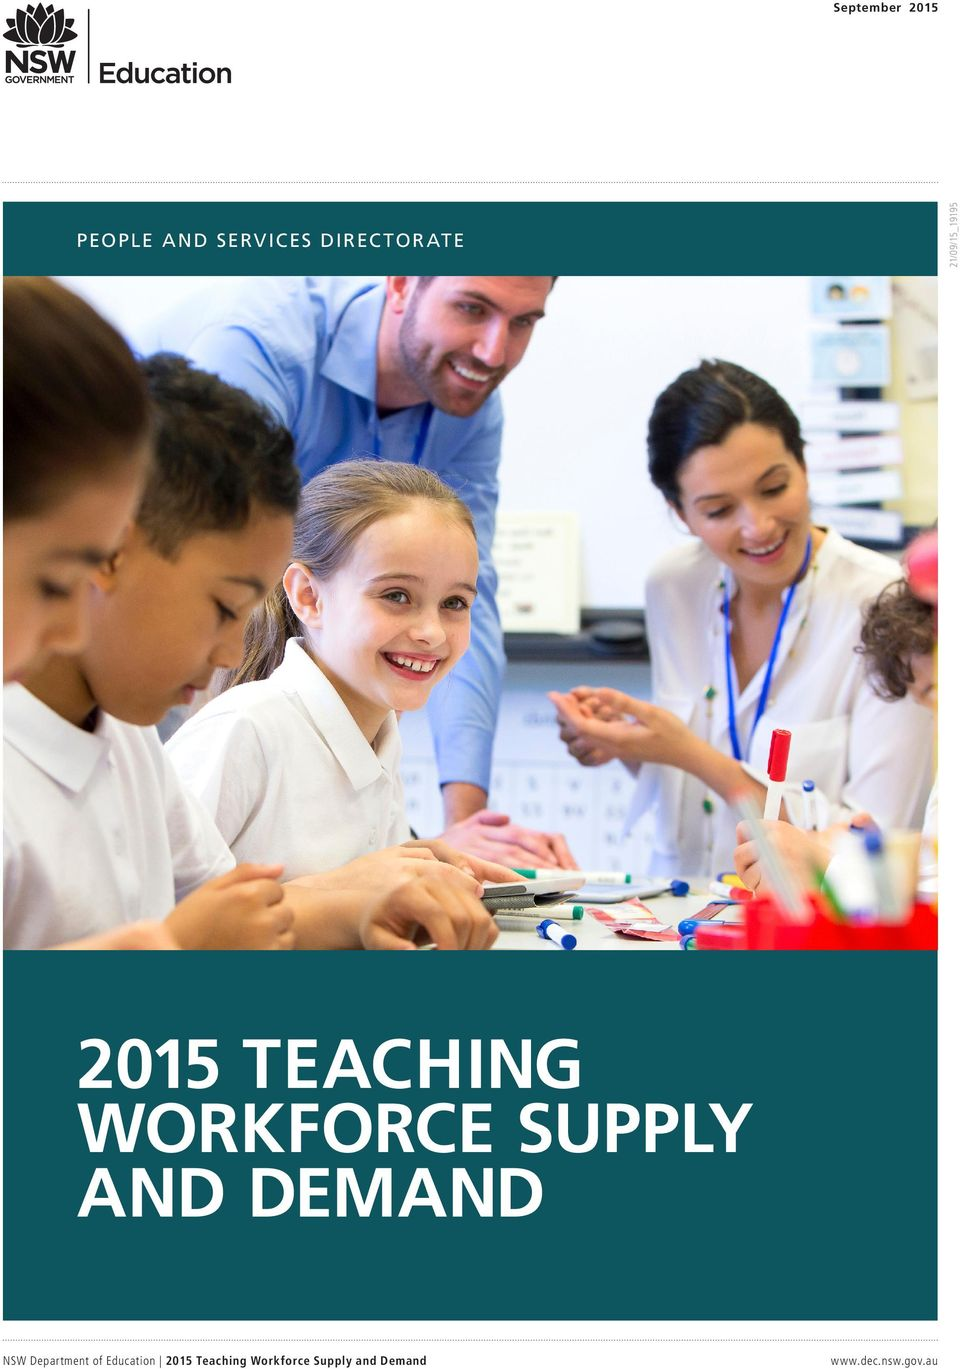 SUPPLY AND DEMAND NSW Department of Education 2015